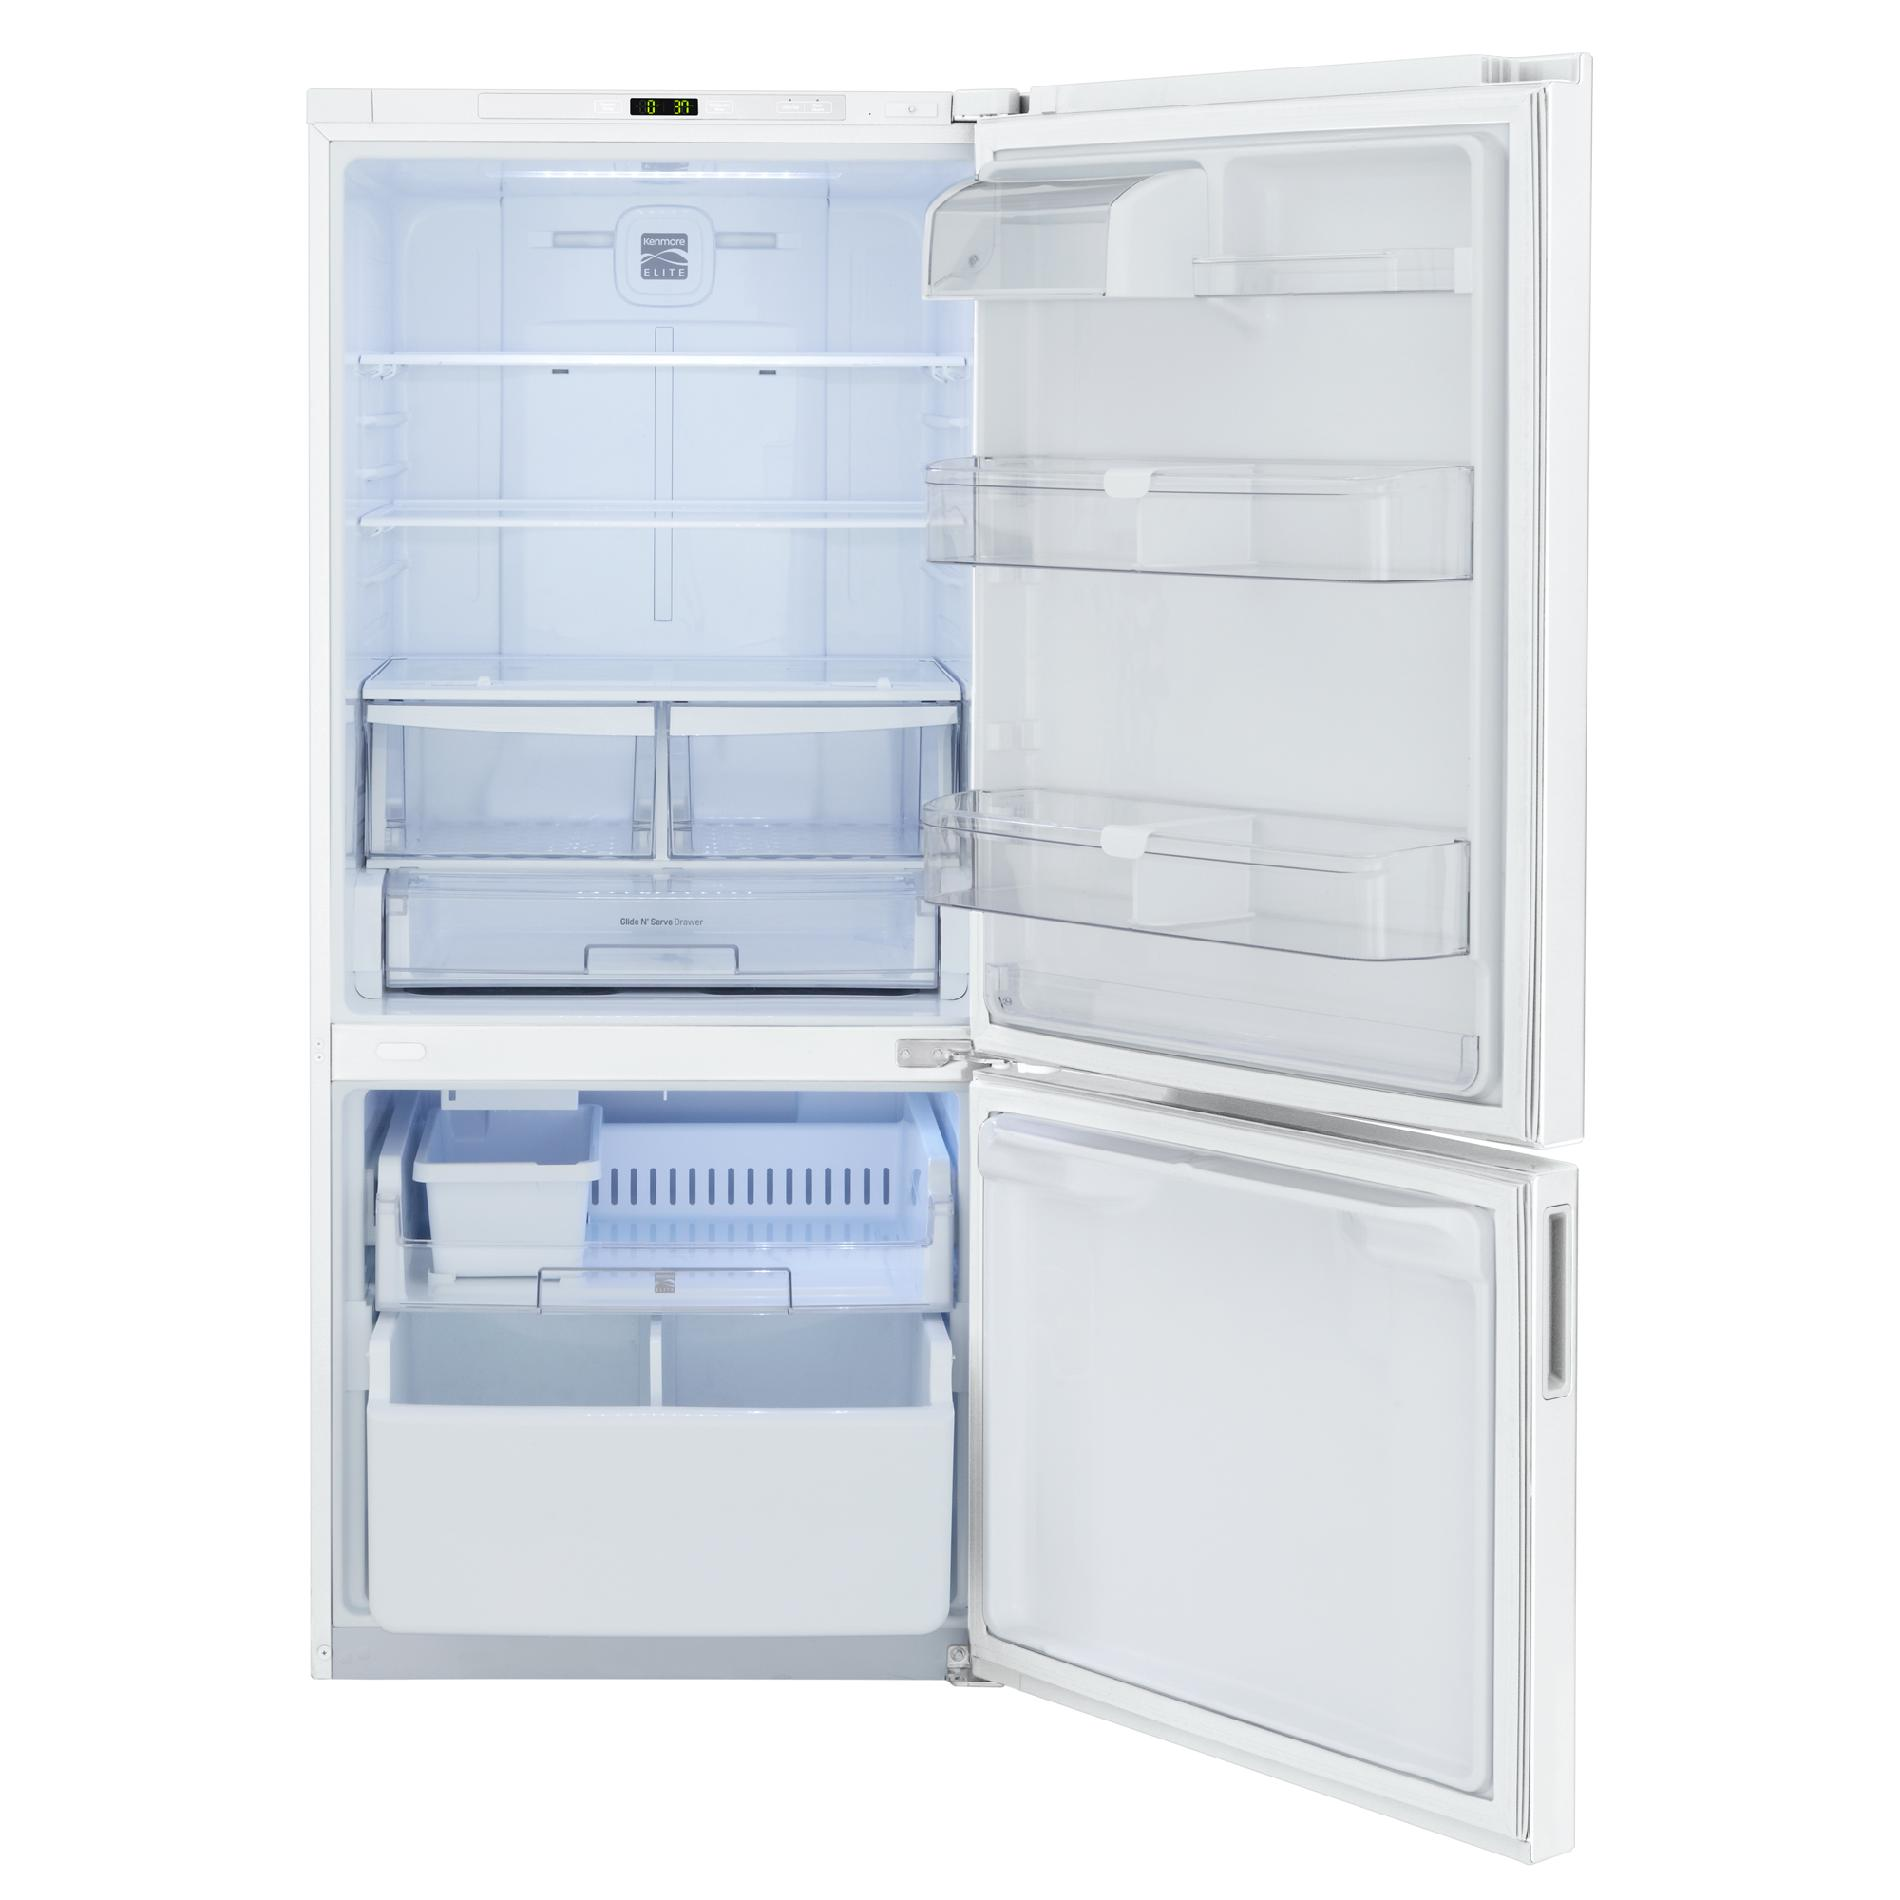 Kenmore Elite 22 cu. ft. Bottom-Freezer Refrigerator - White